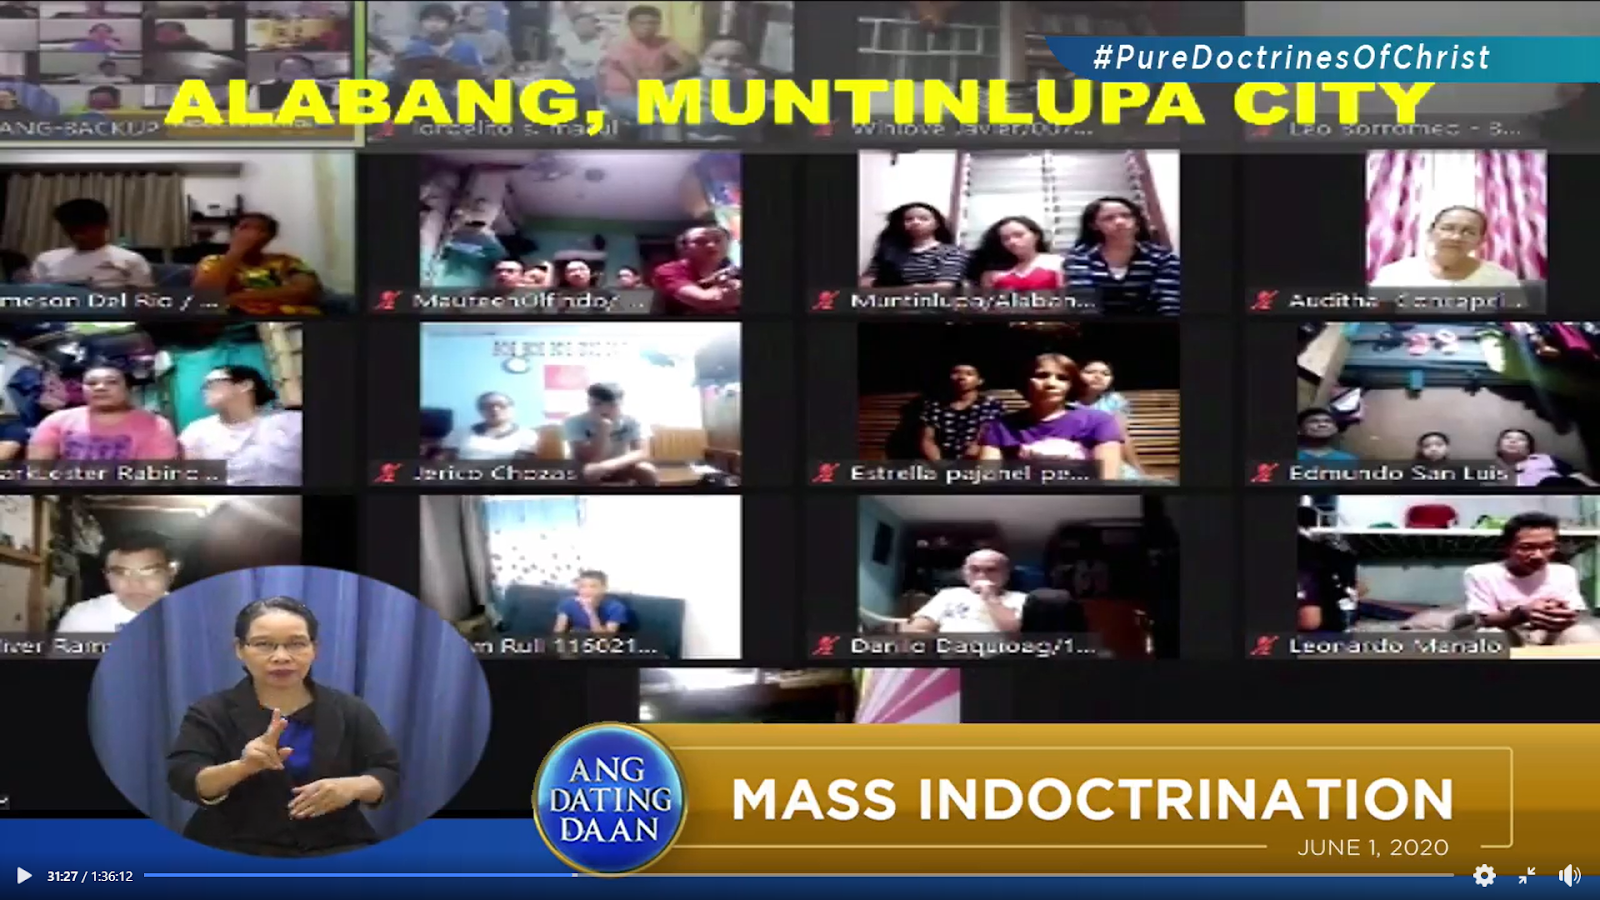 Guests from Alabang Muntinlupa City listening attentively to Bro Eliseo Soriano during Live Mass Indoctrination via Zoom